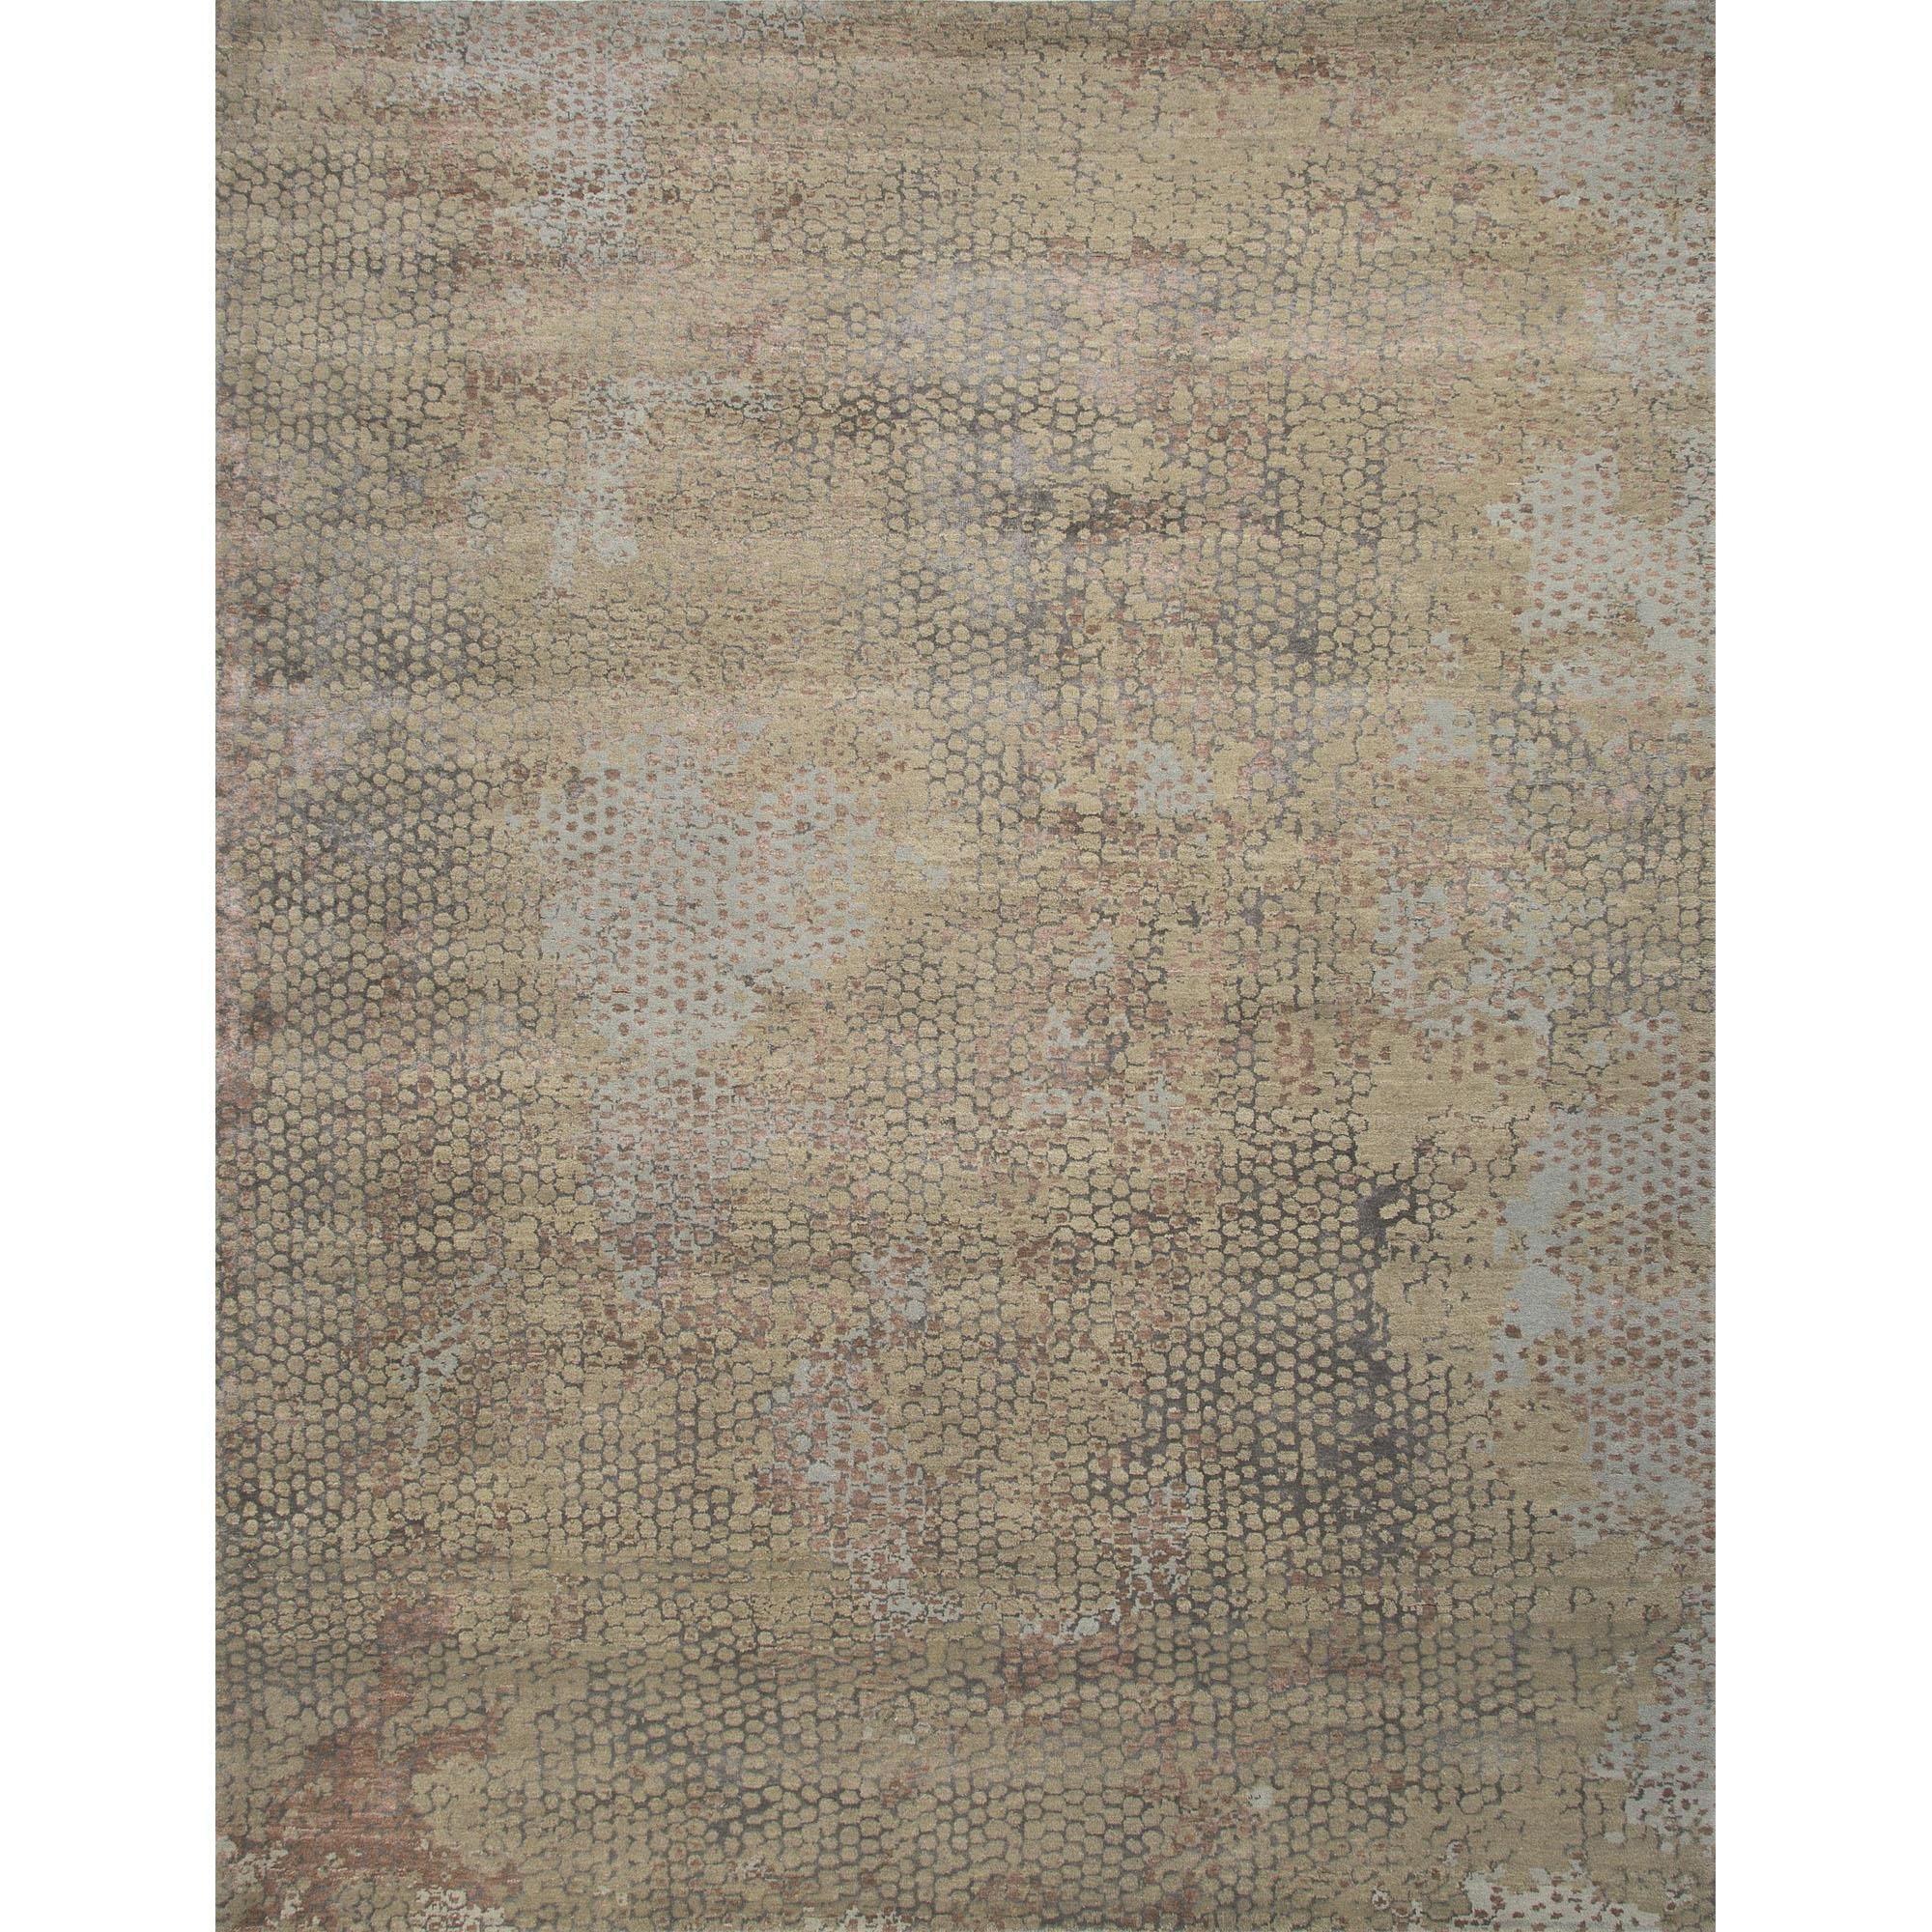 JAIPUR Rugs Chaos Theory By Kavi 5.6 x 8 Rug - Item Number: RUG116987